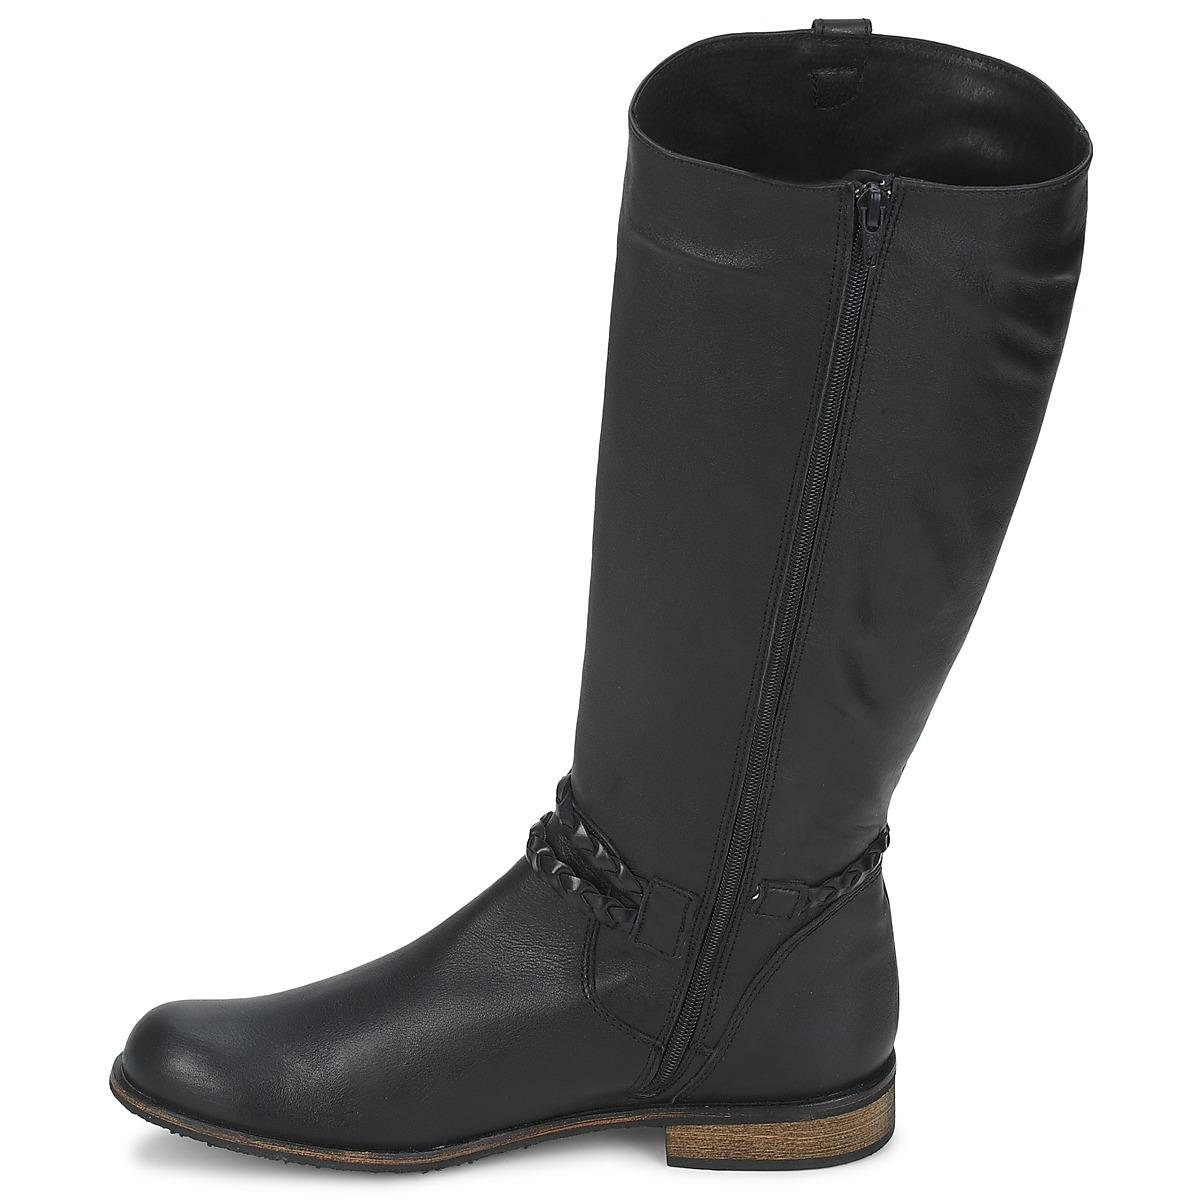 So Size Leather Bertou High Boots in Black